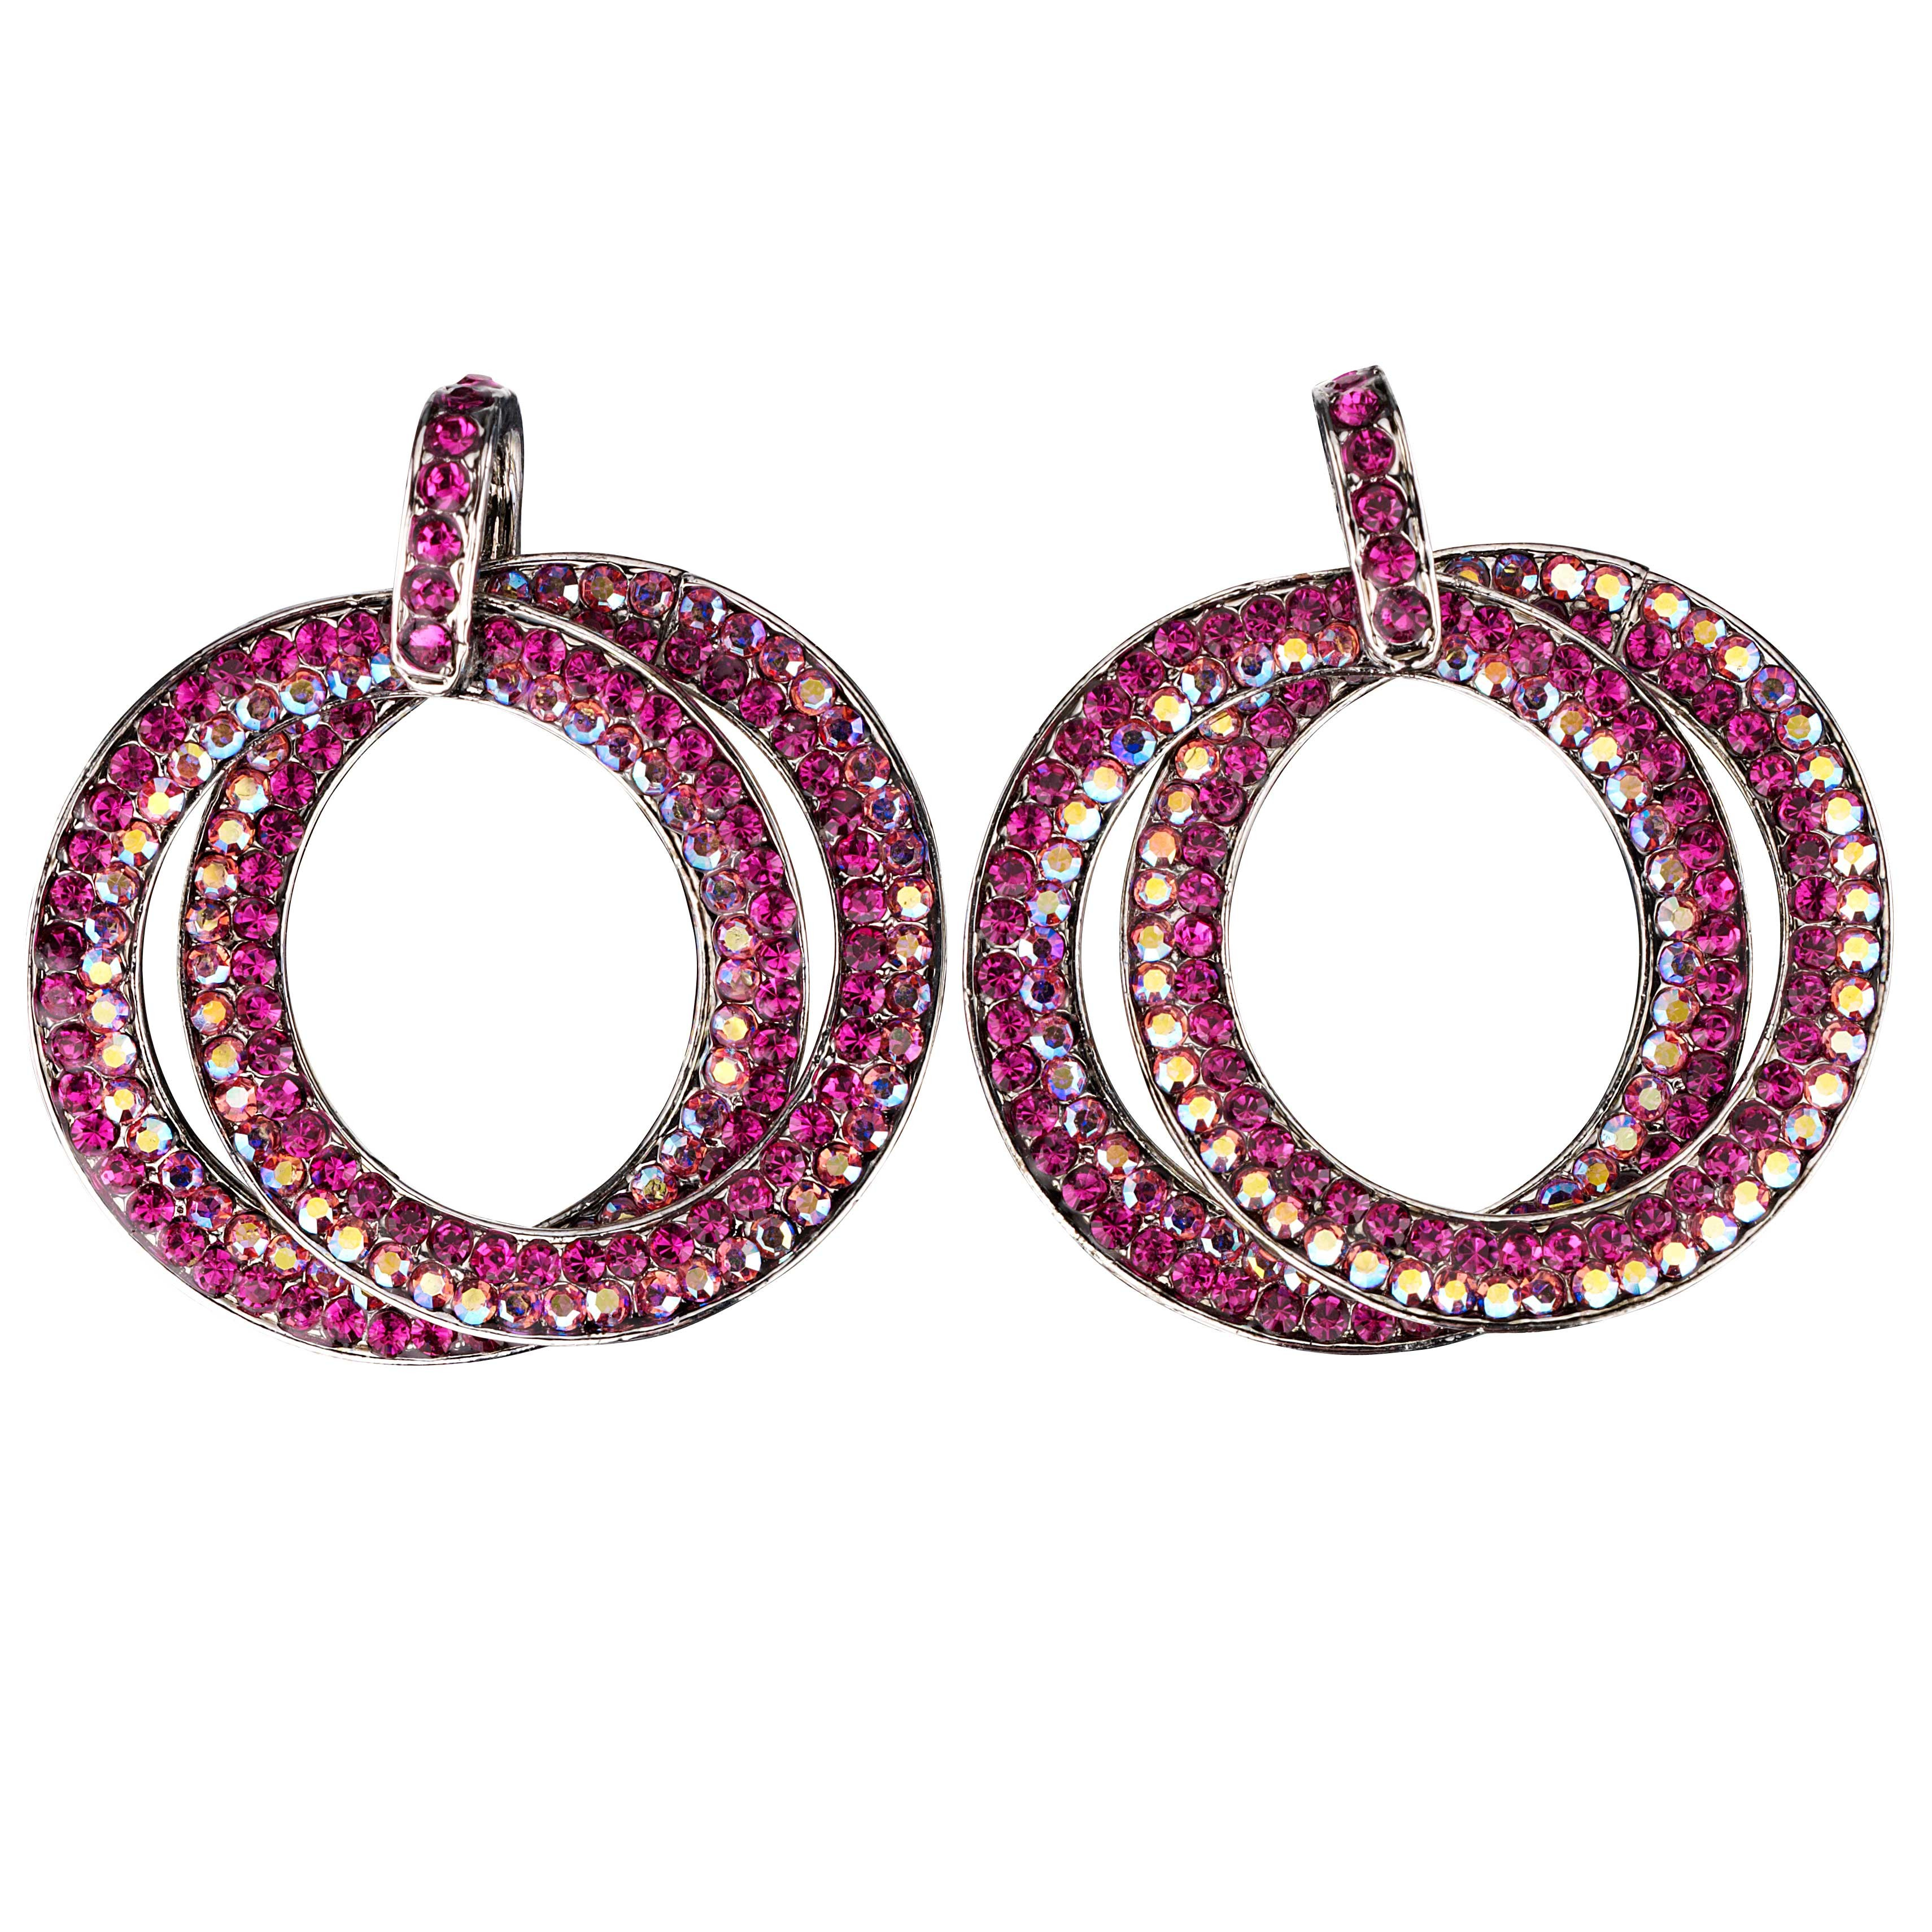 a1d55ffc0 Double Circle Hoops Crystal Earrings with Pink, Fuchsia, AB Pink Swarovski  Crystal - length